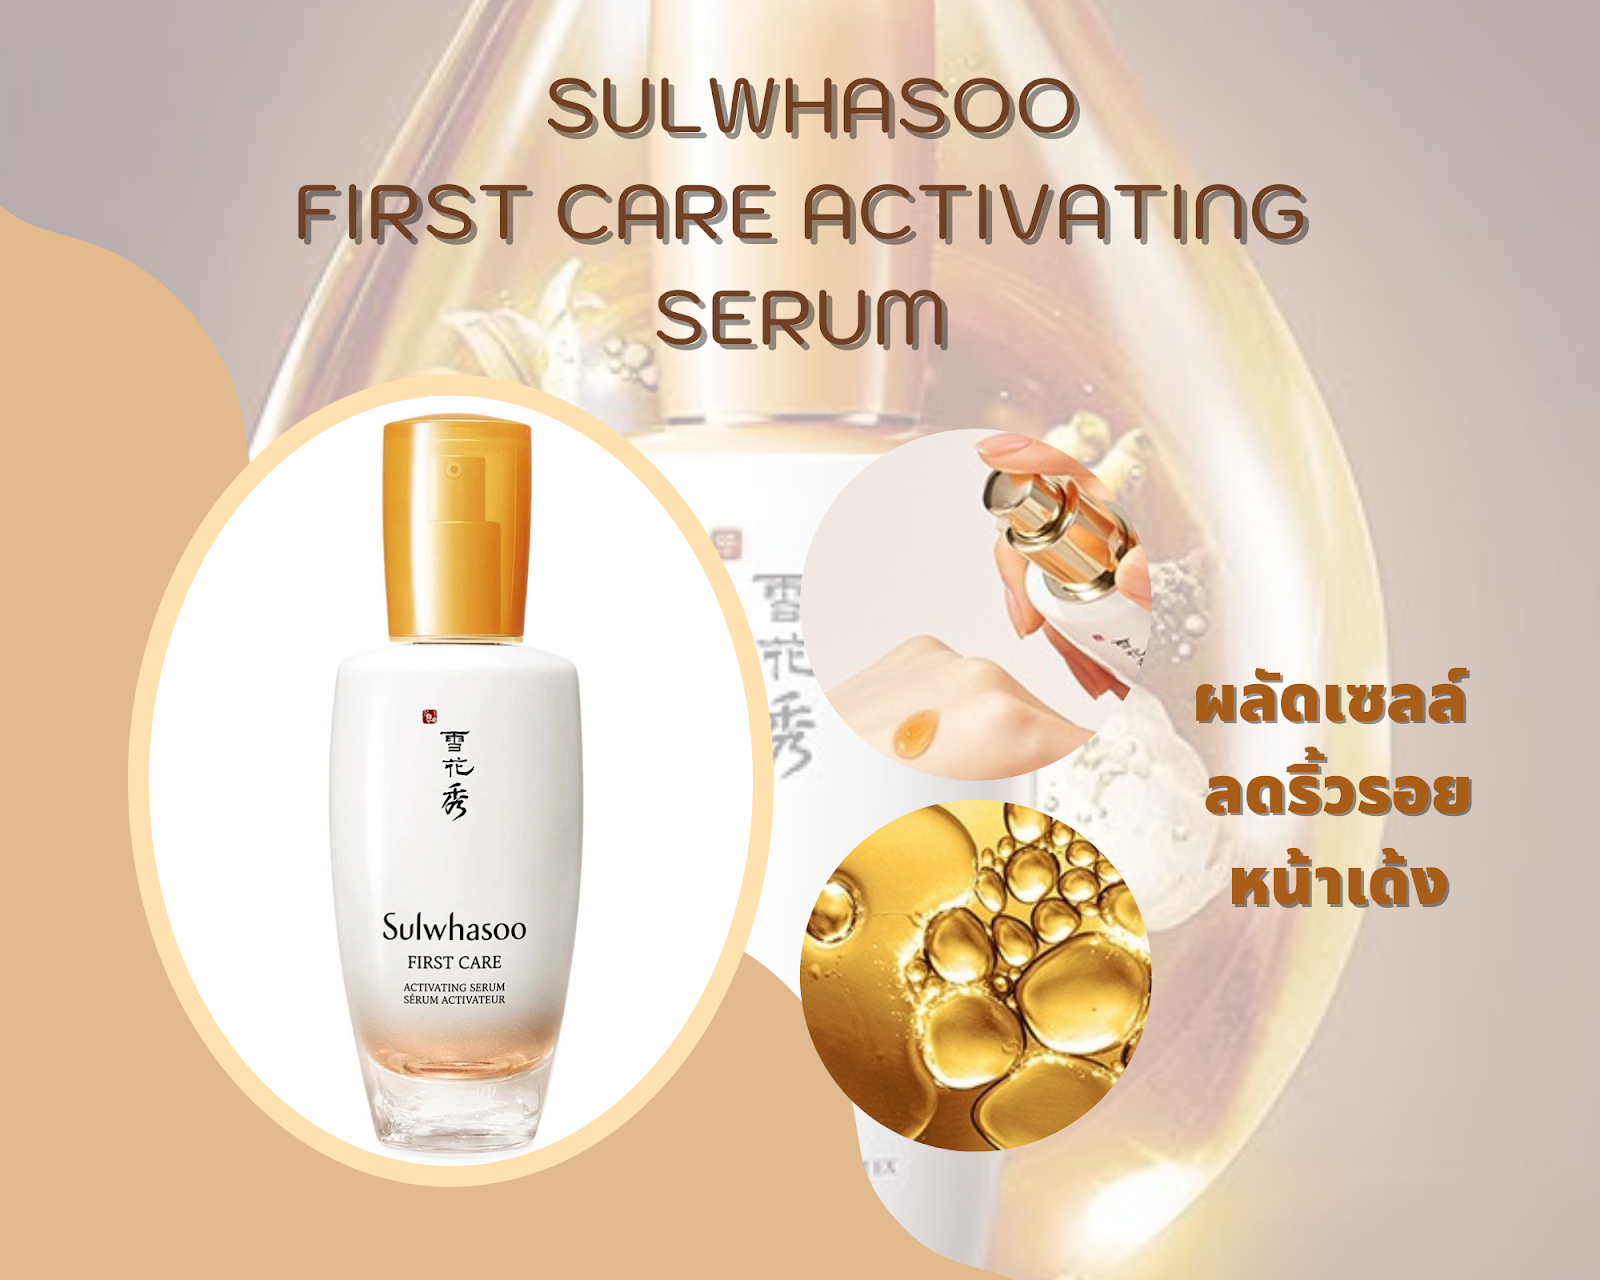 10. SULWHASOO First Care Activating Serum